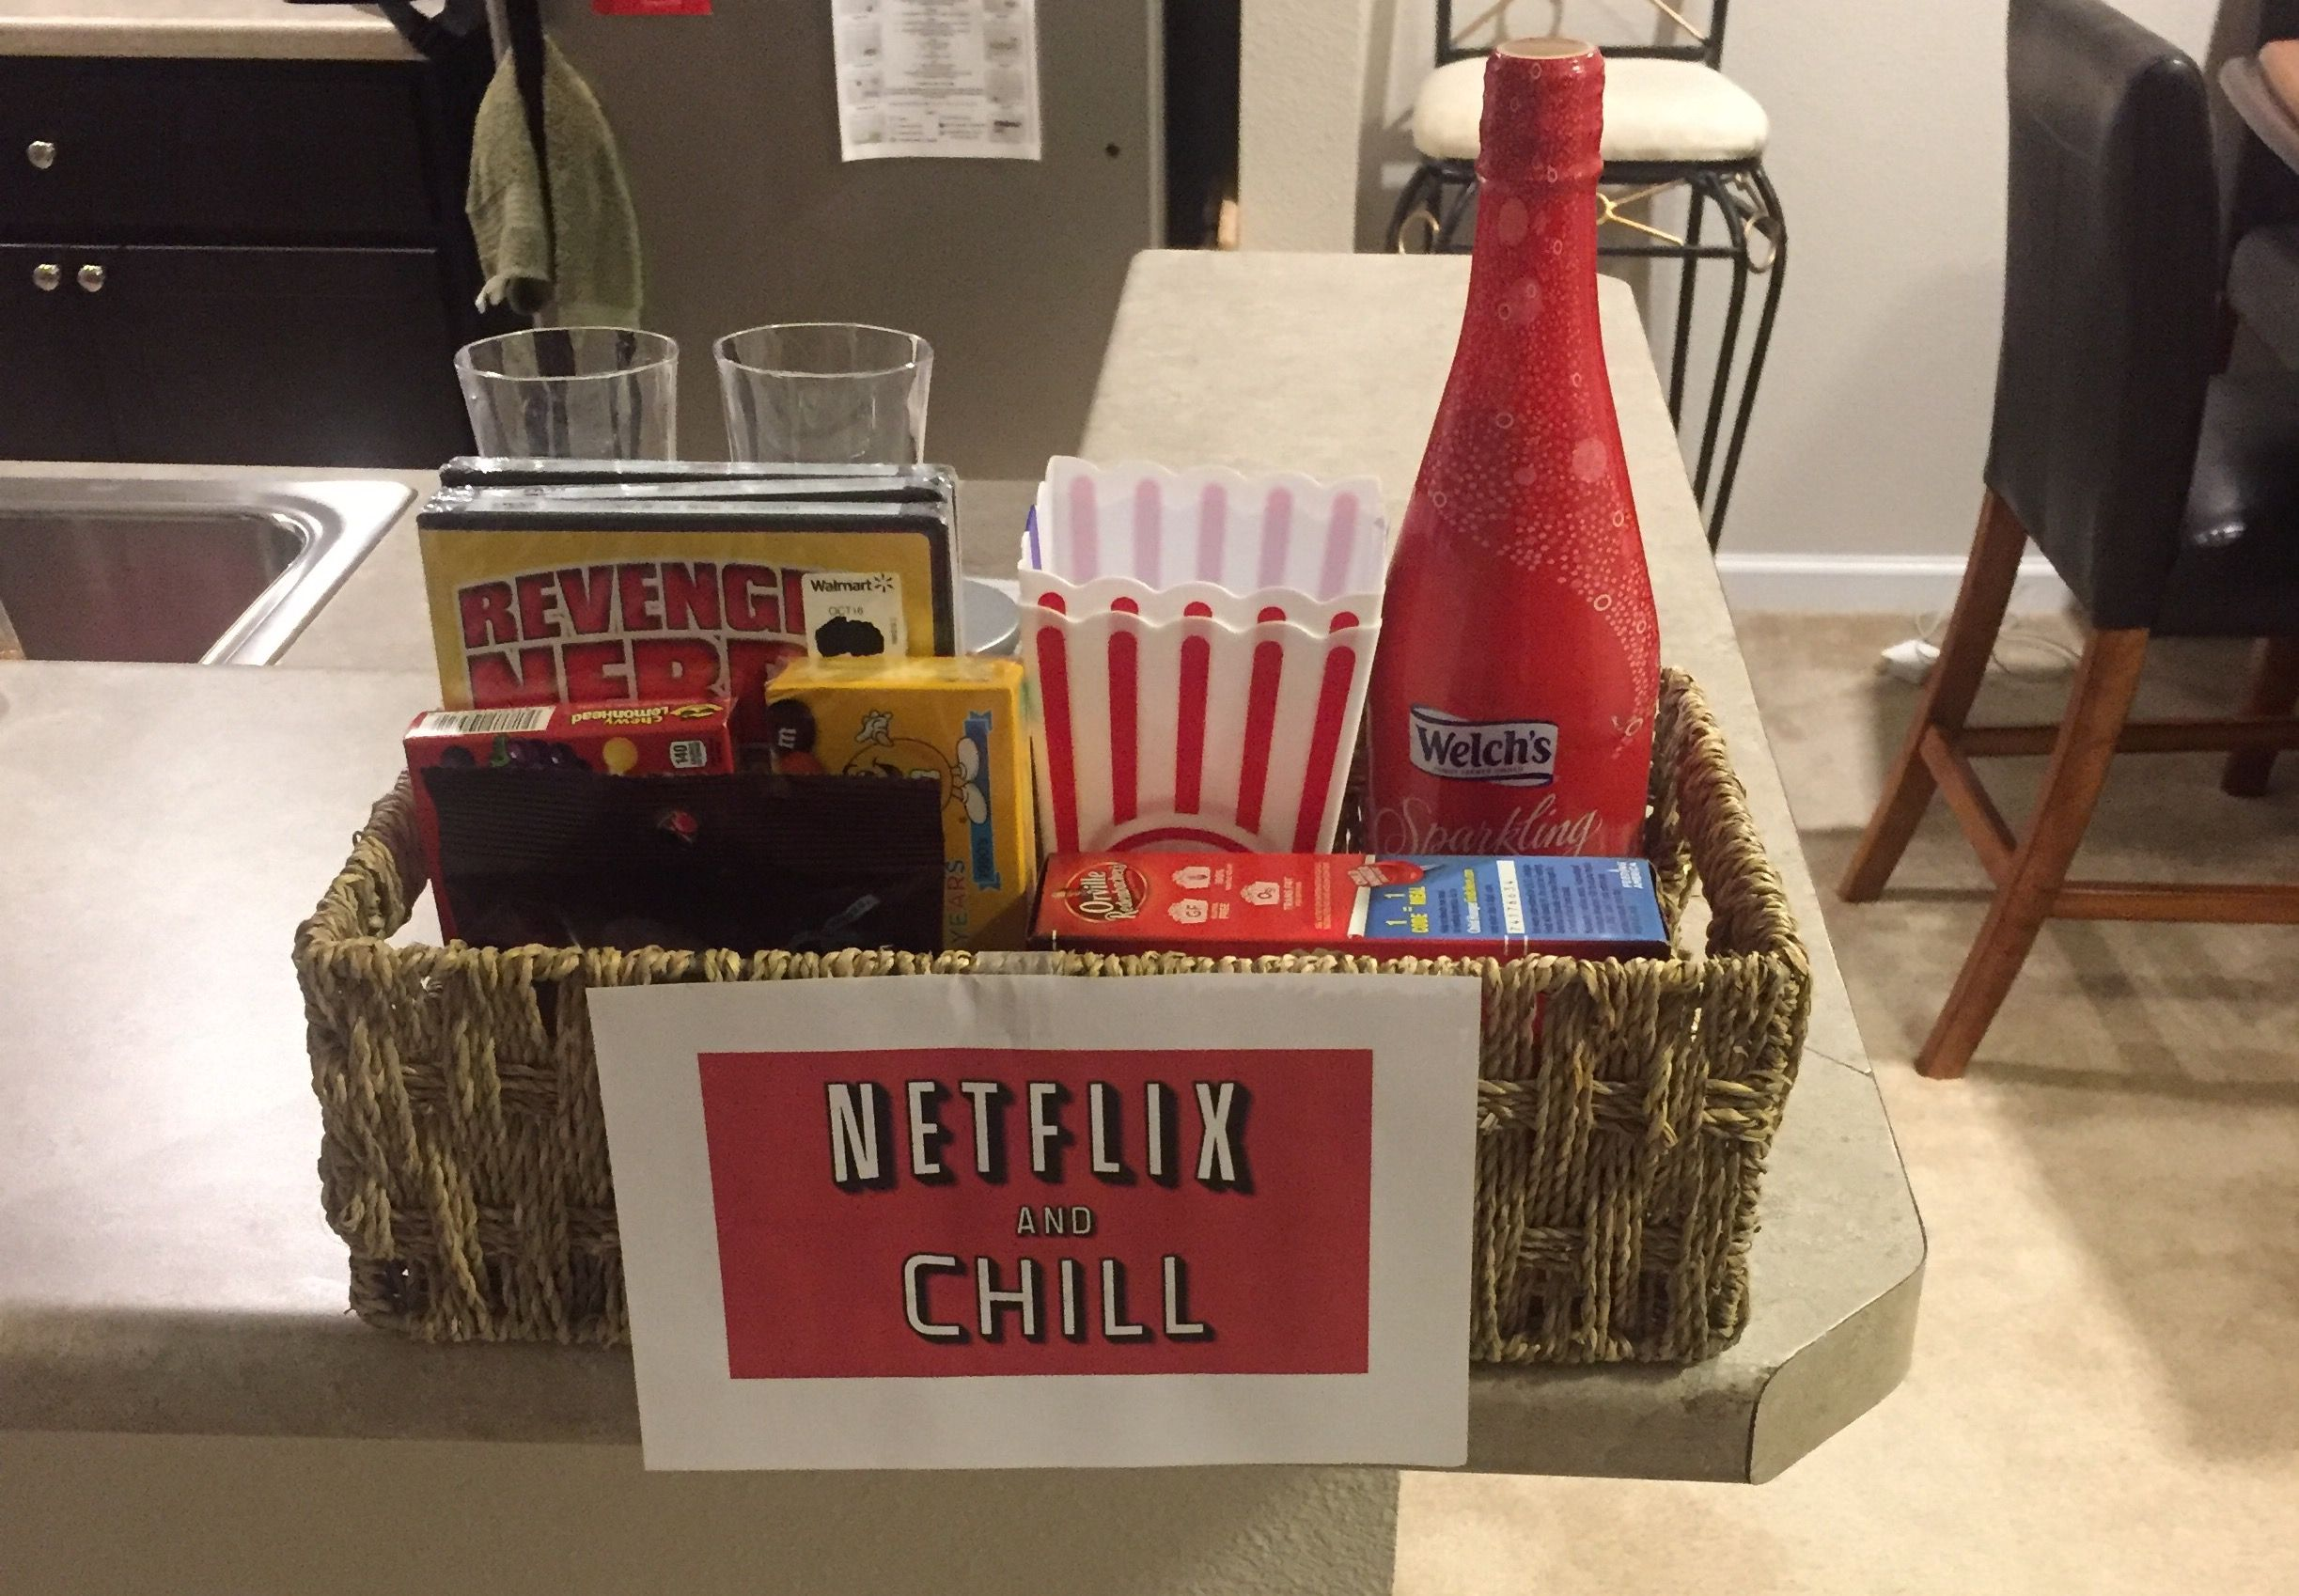 Wedding Gift Online: Netflix And Chill Bridal Shower Gift Basket -Watch Free